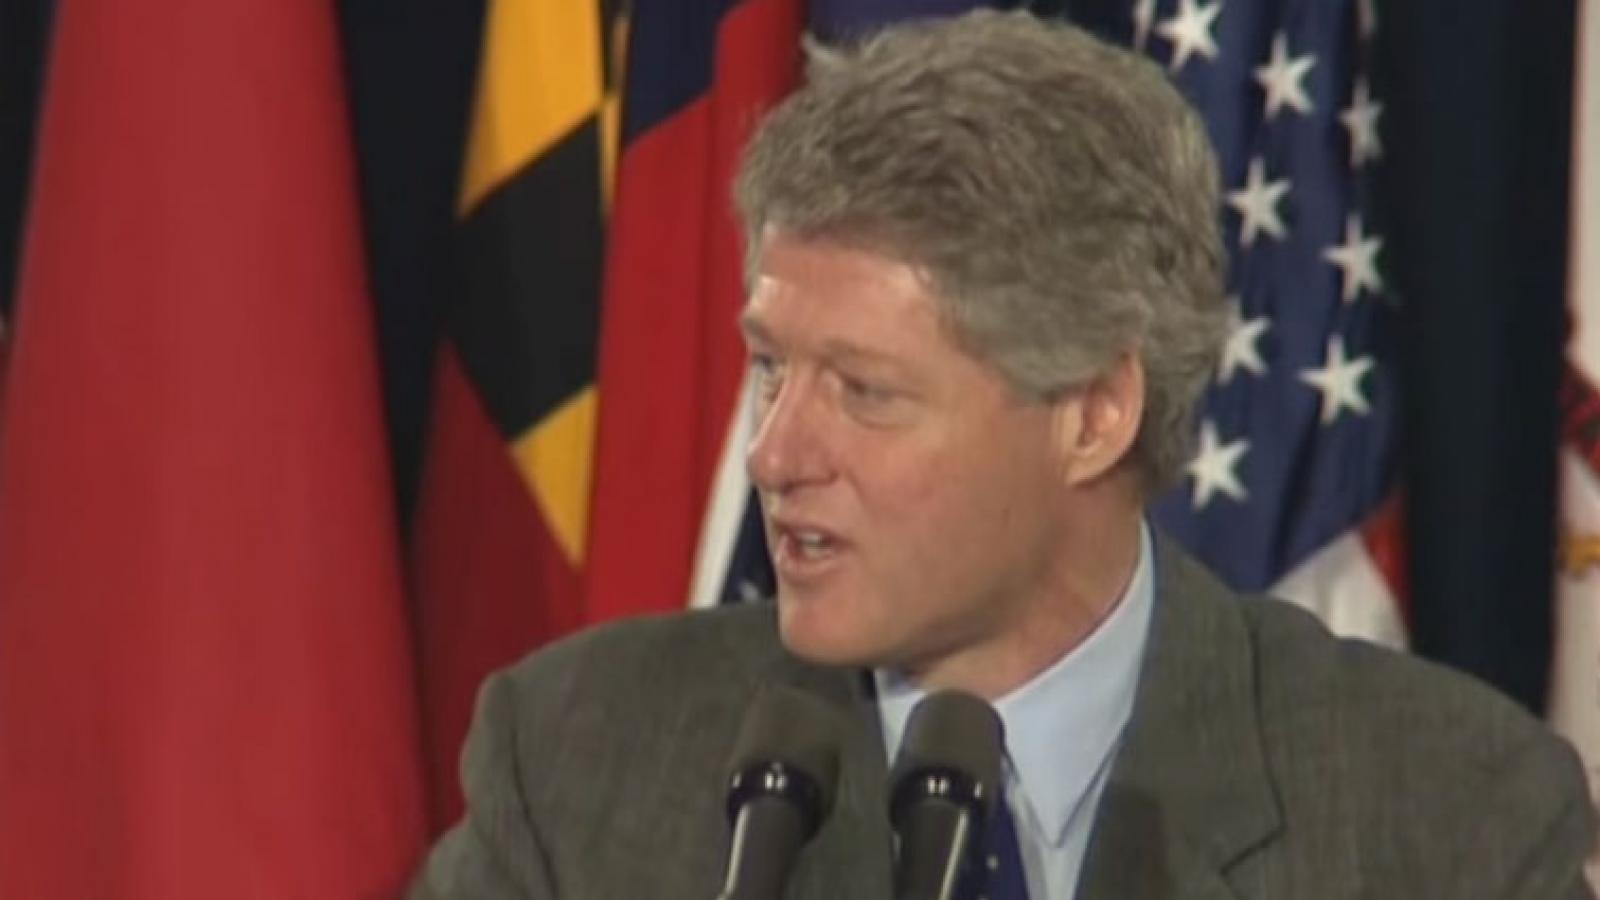 President Clinton speaking